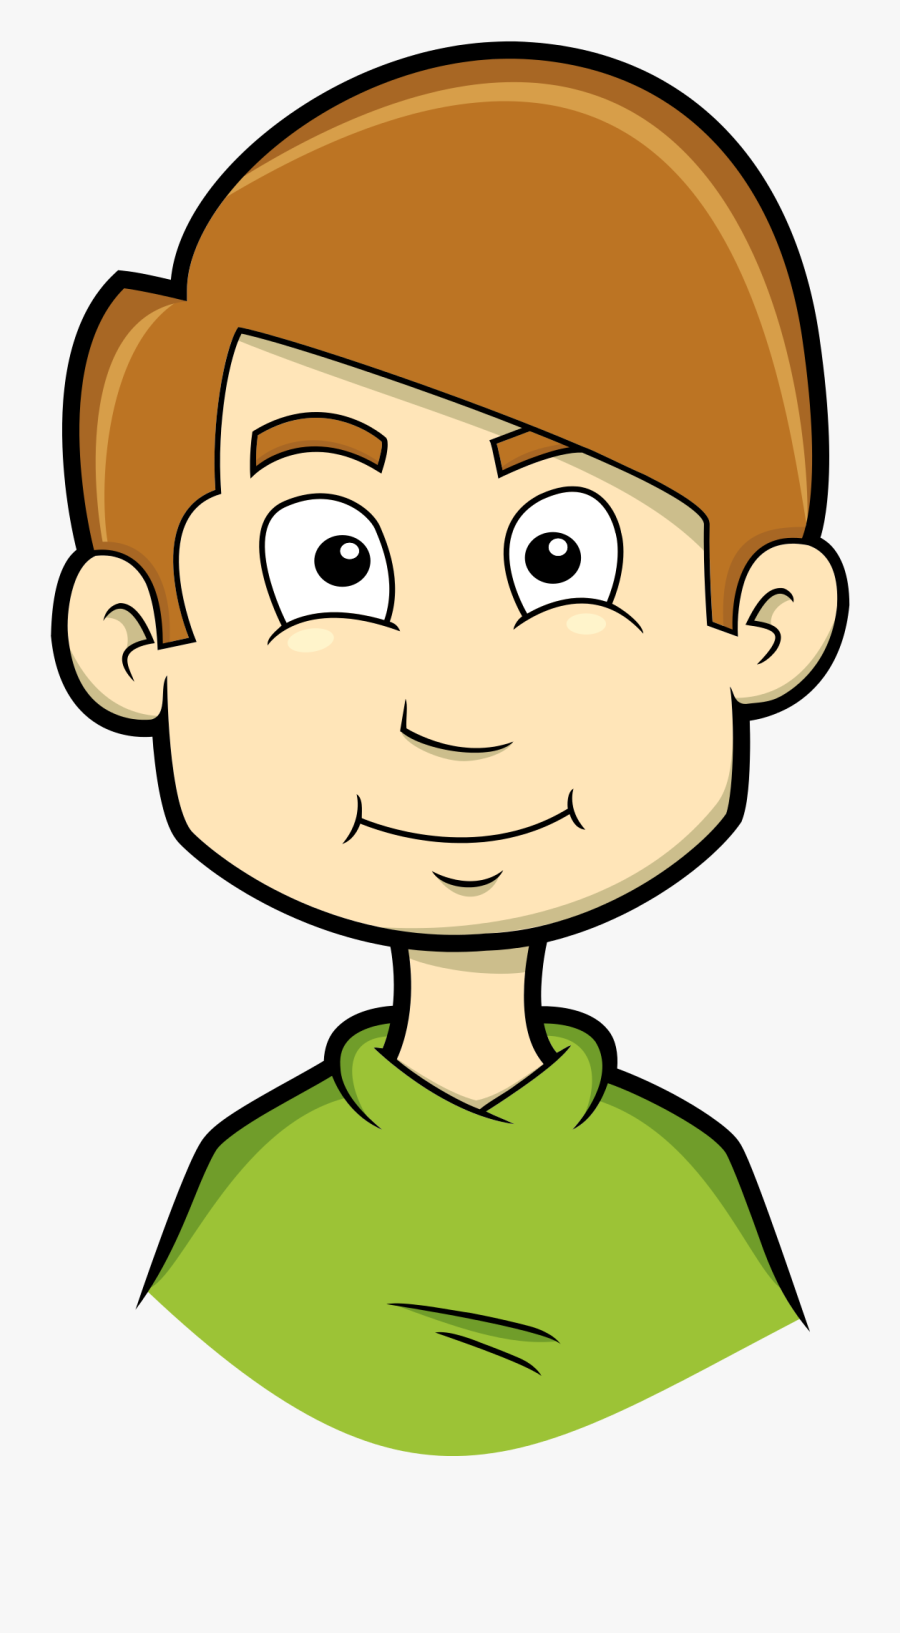 Human Nose Clipart For Kids , Free Transparent Clipart.